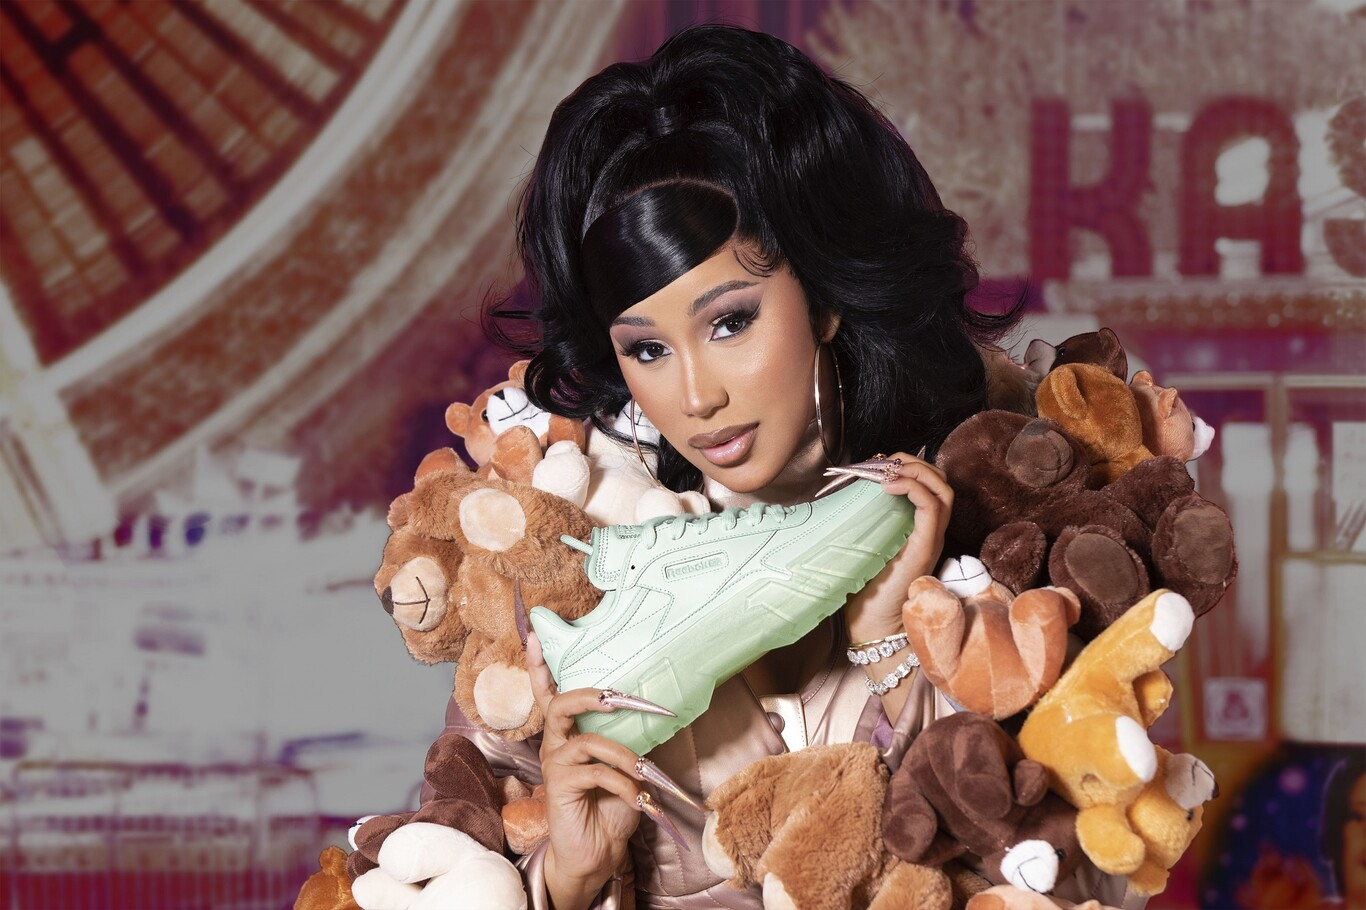 Cardi B Returns From the Hand of Reebok and Launches a Collection